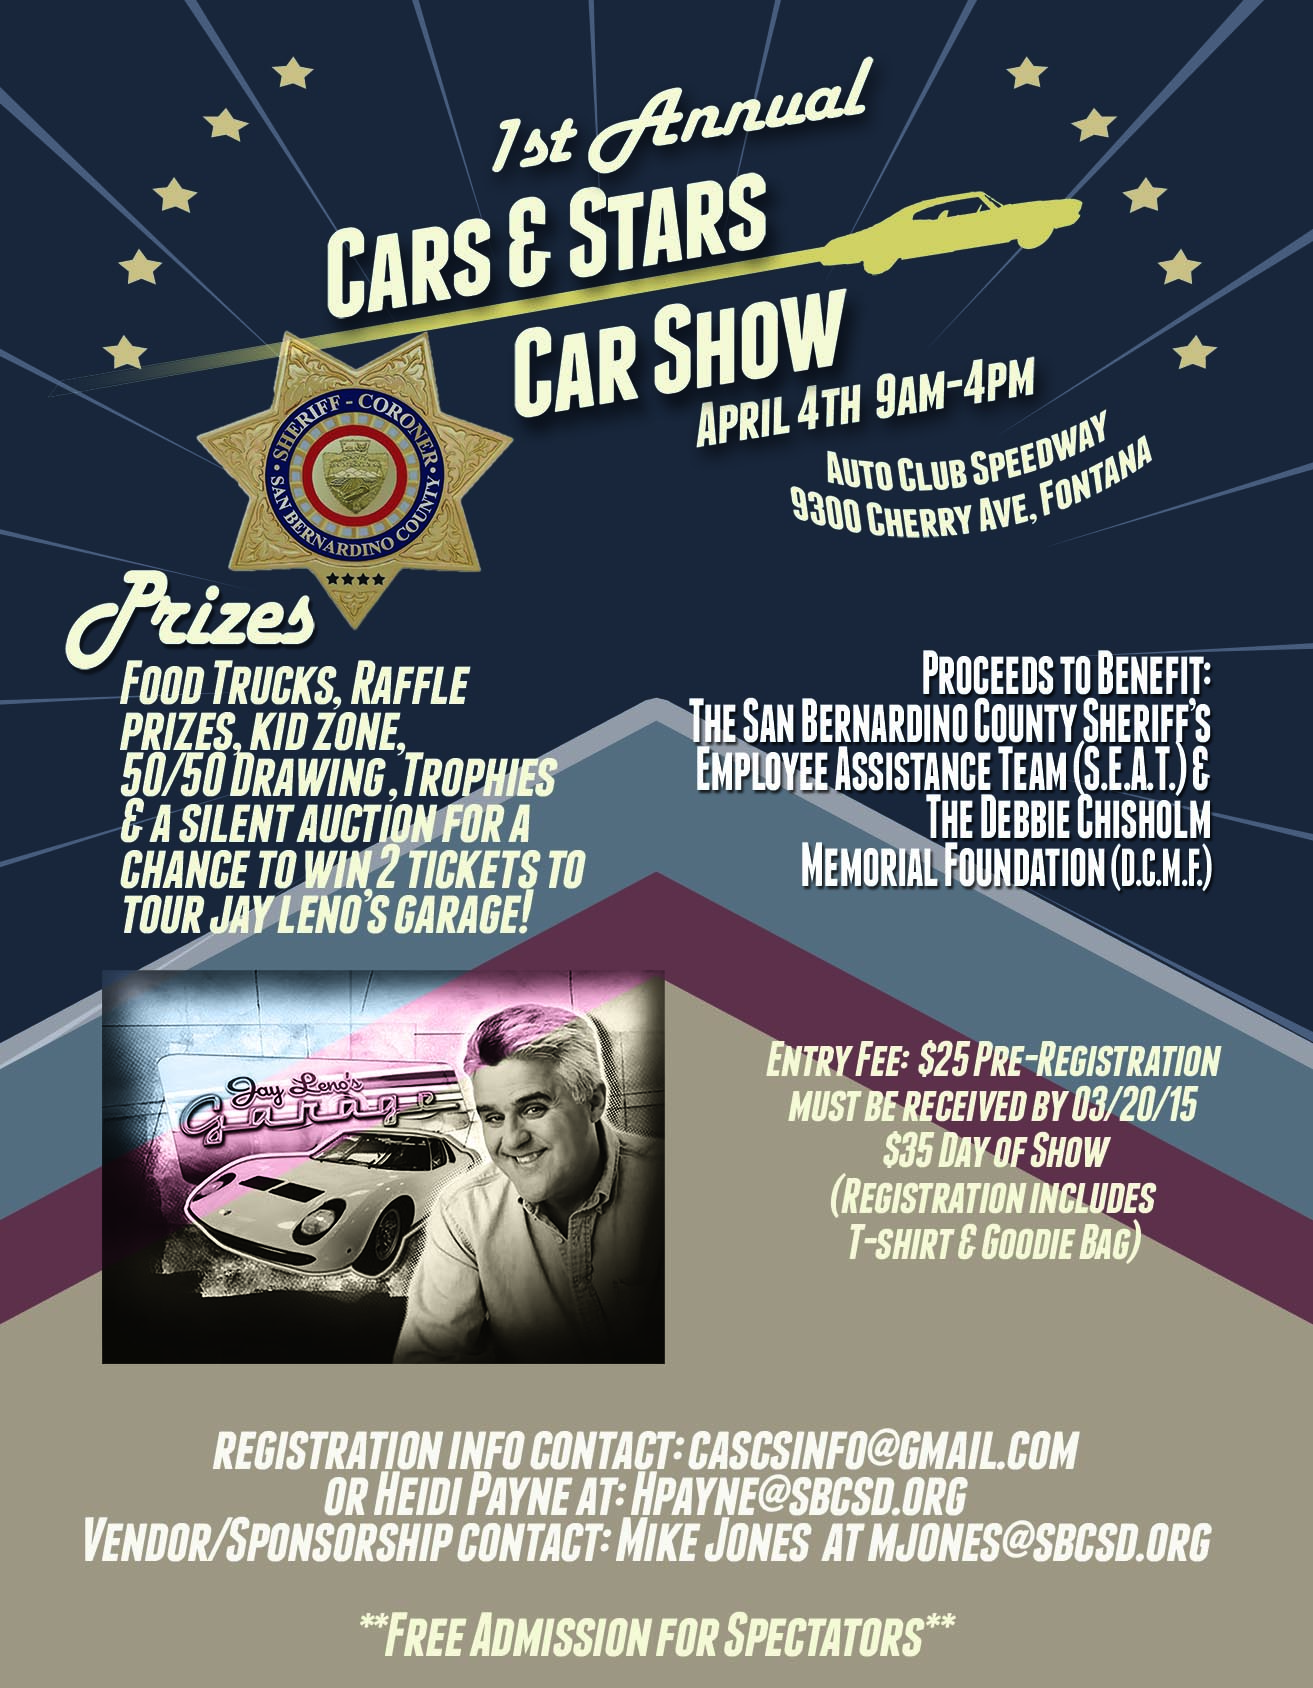 CASCarShowFlyer update 2015